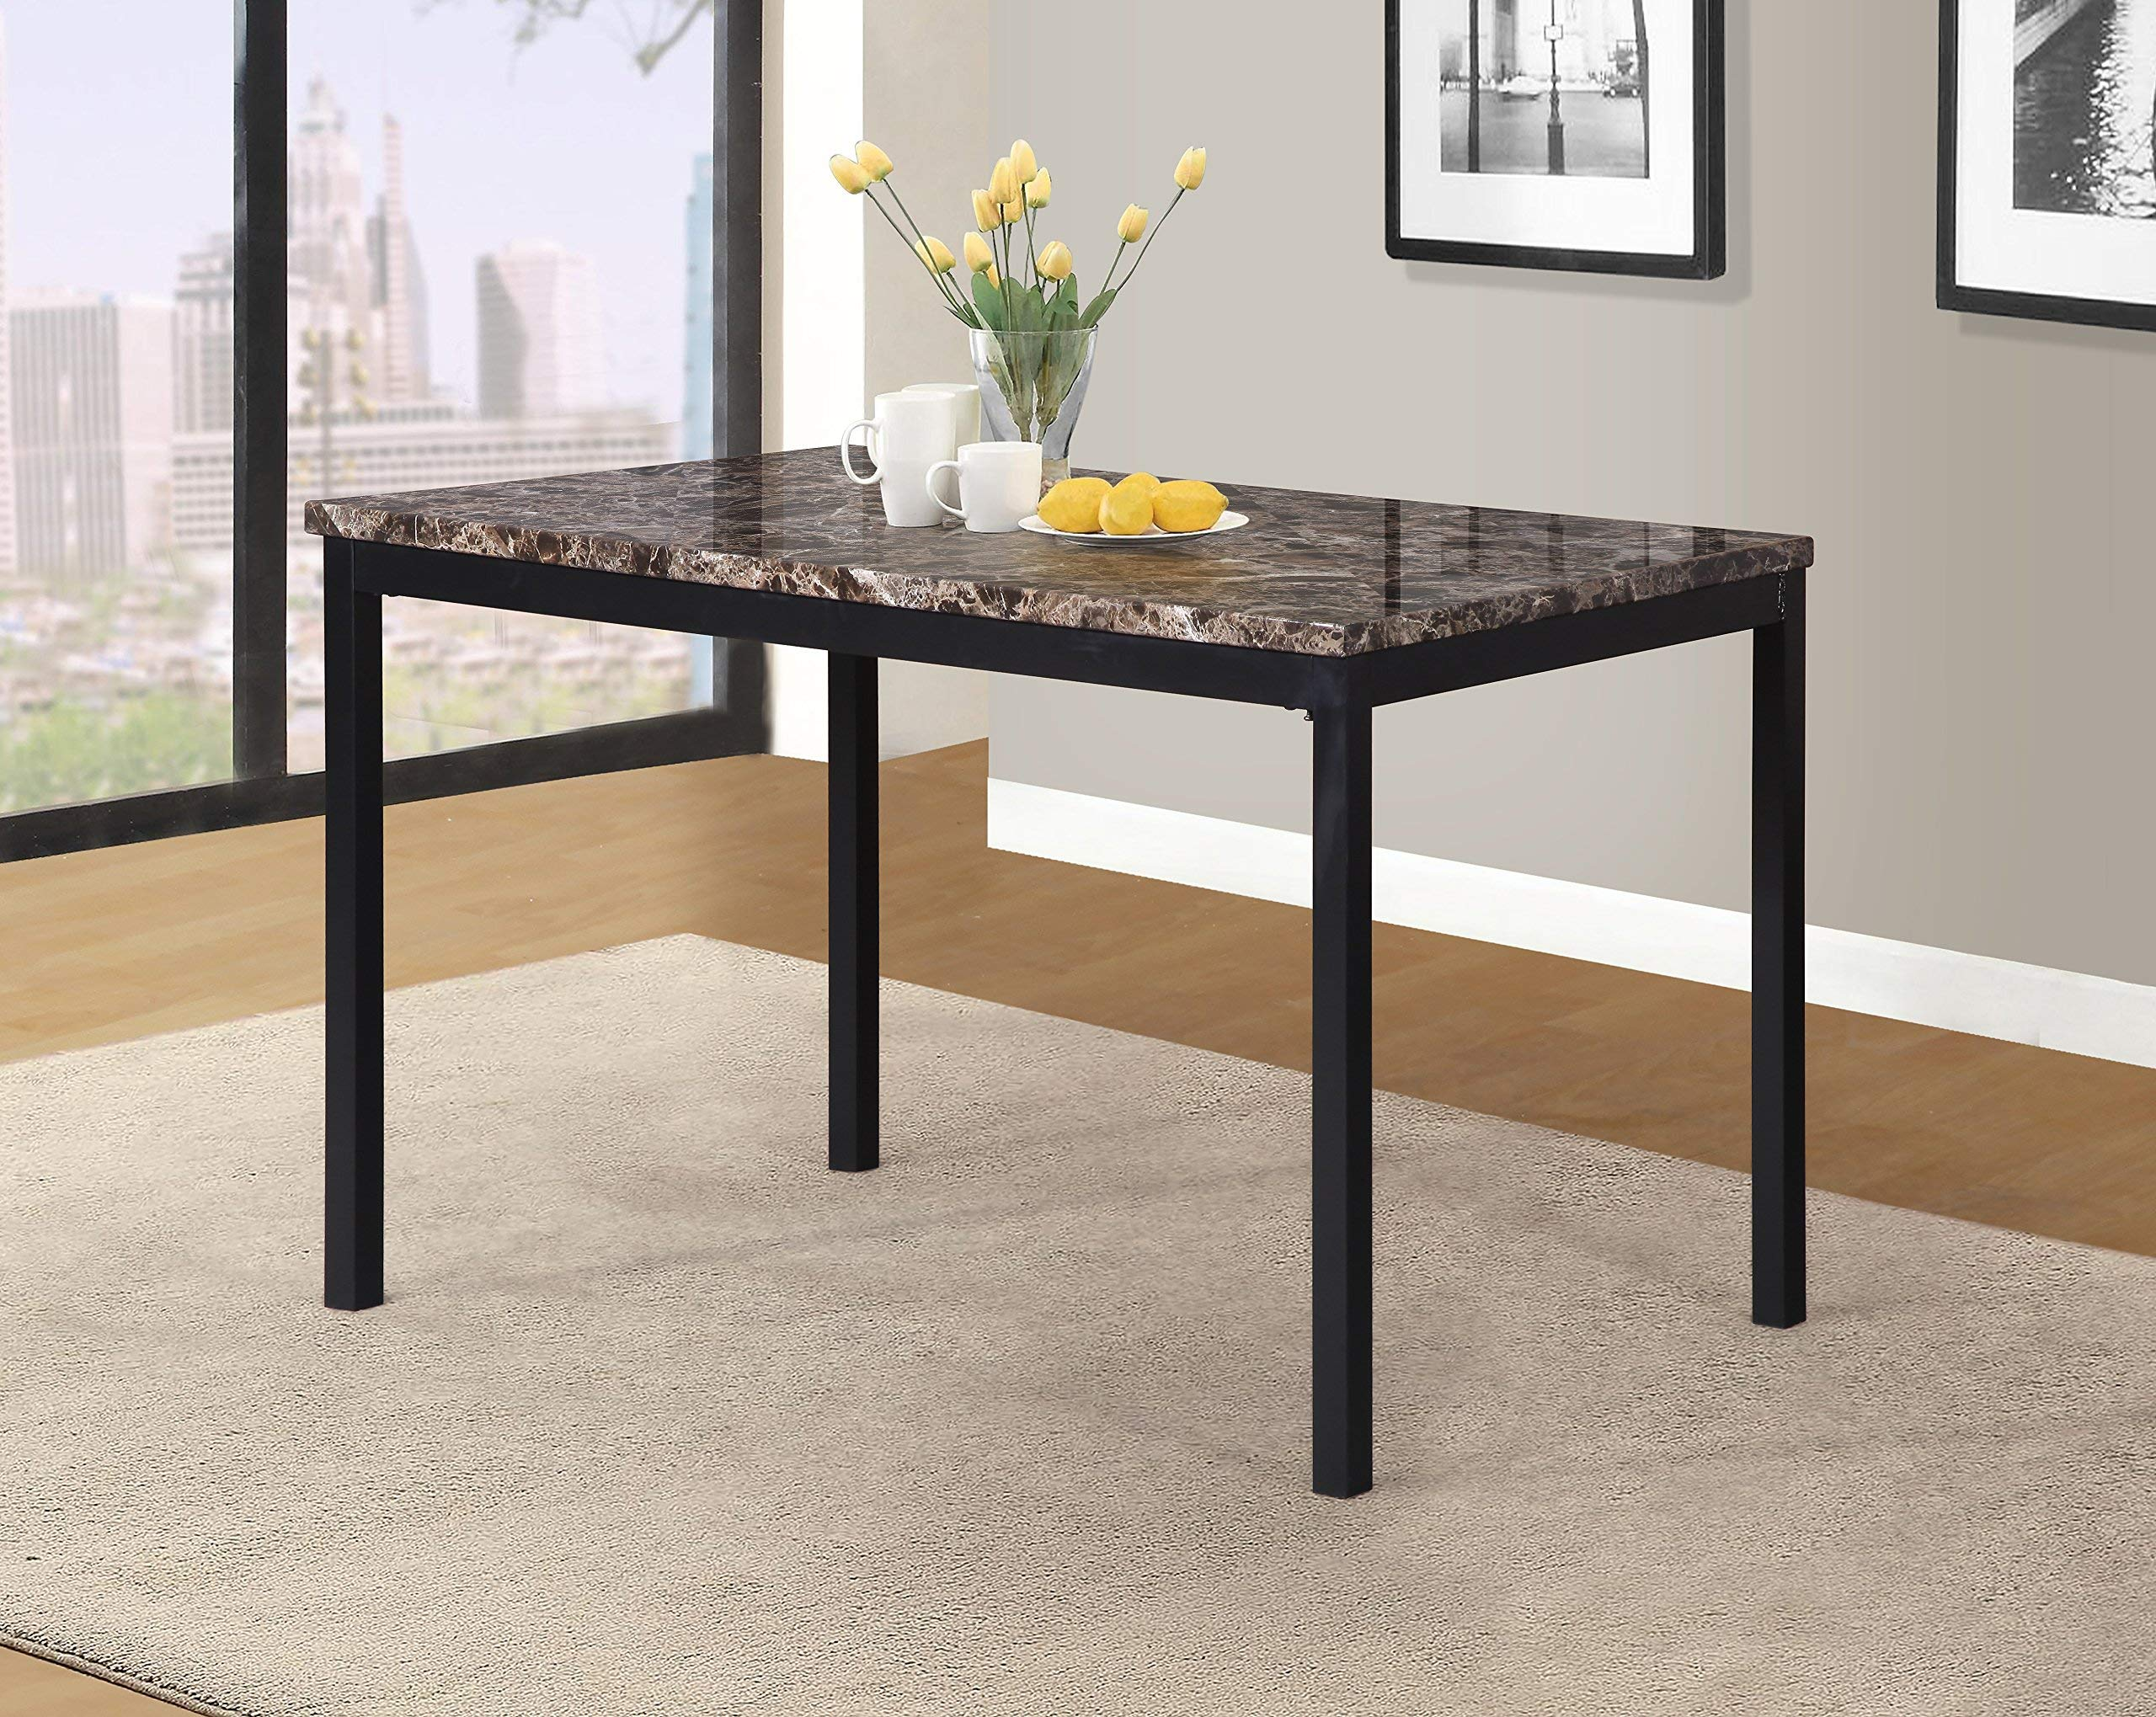 Roundhill Furniture T007 Noyes Metal Dining Table with Laminated Faux Marble Top by Roundhill Furniture (Image #1)